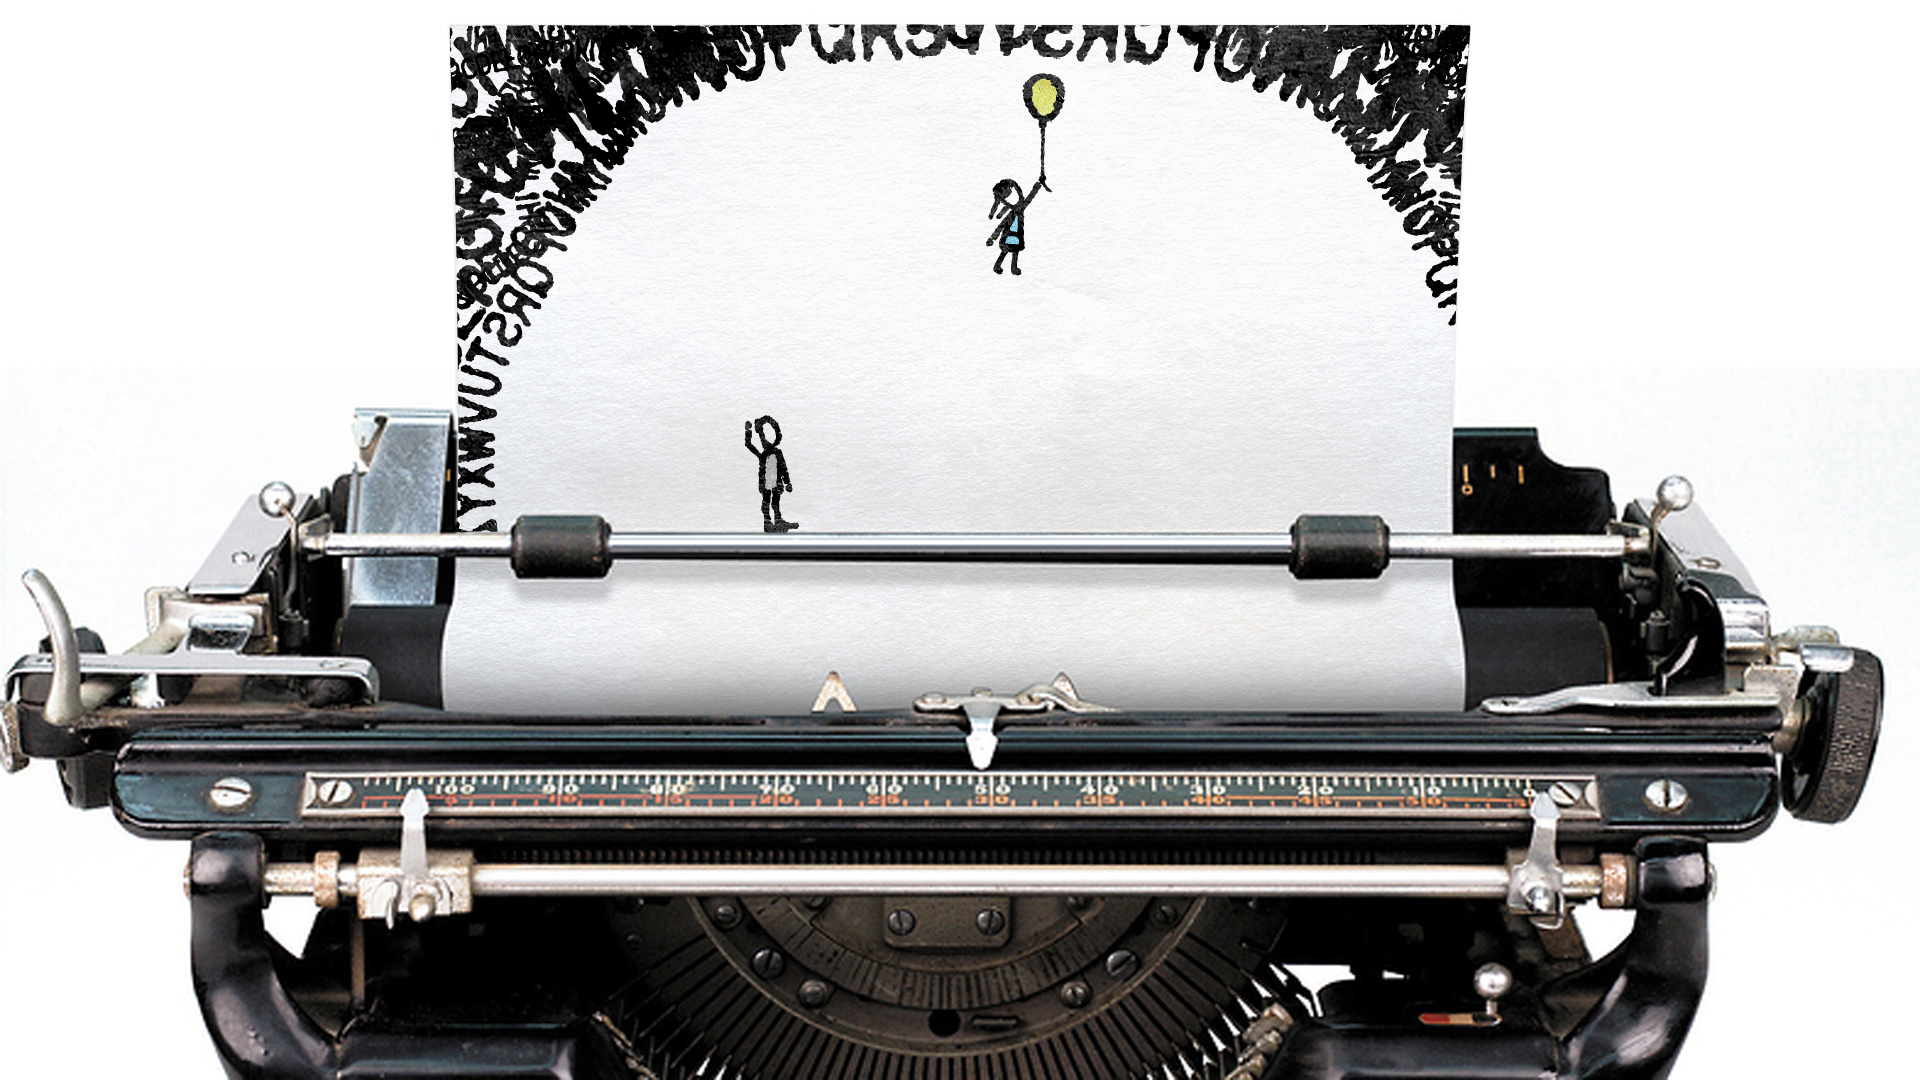 Typewriter example 2